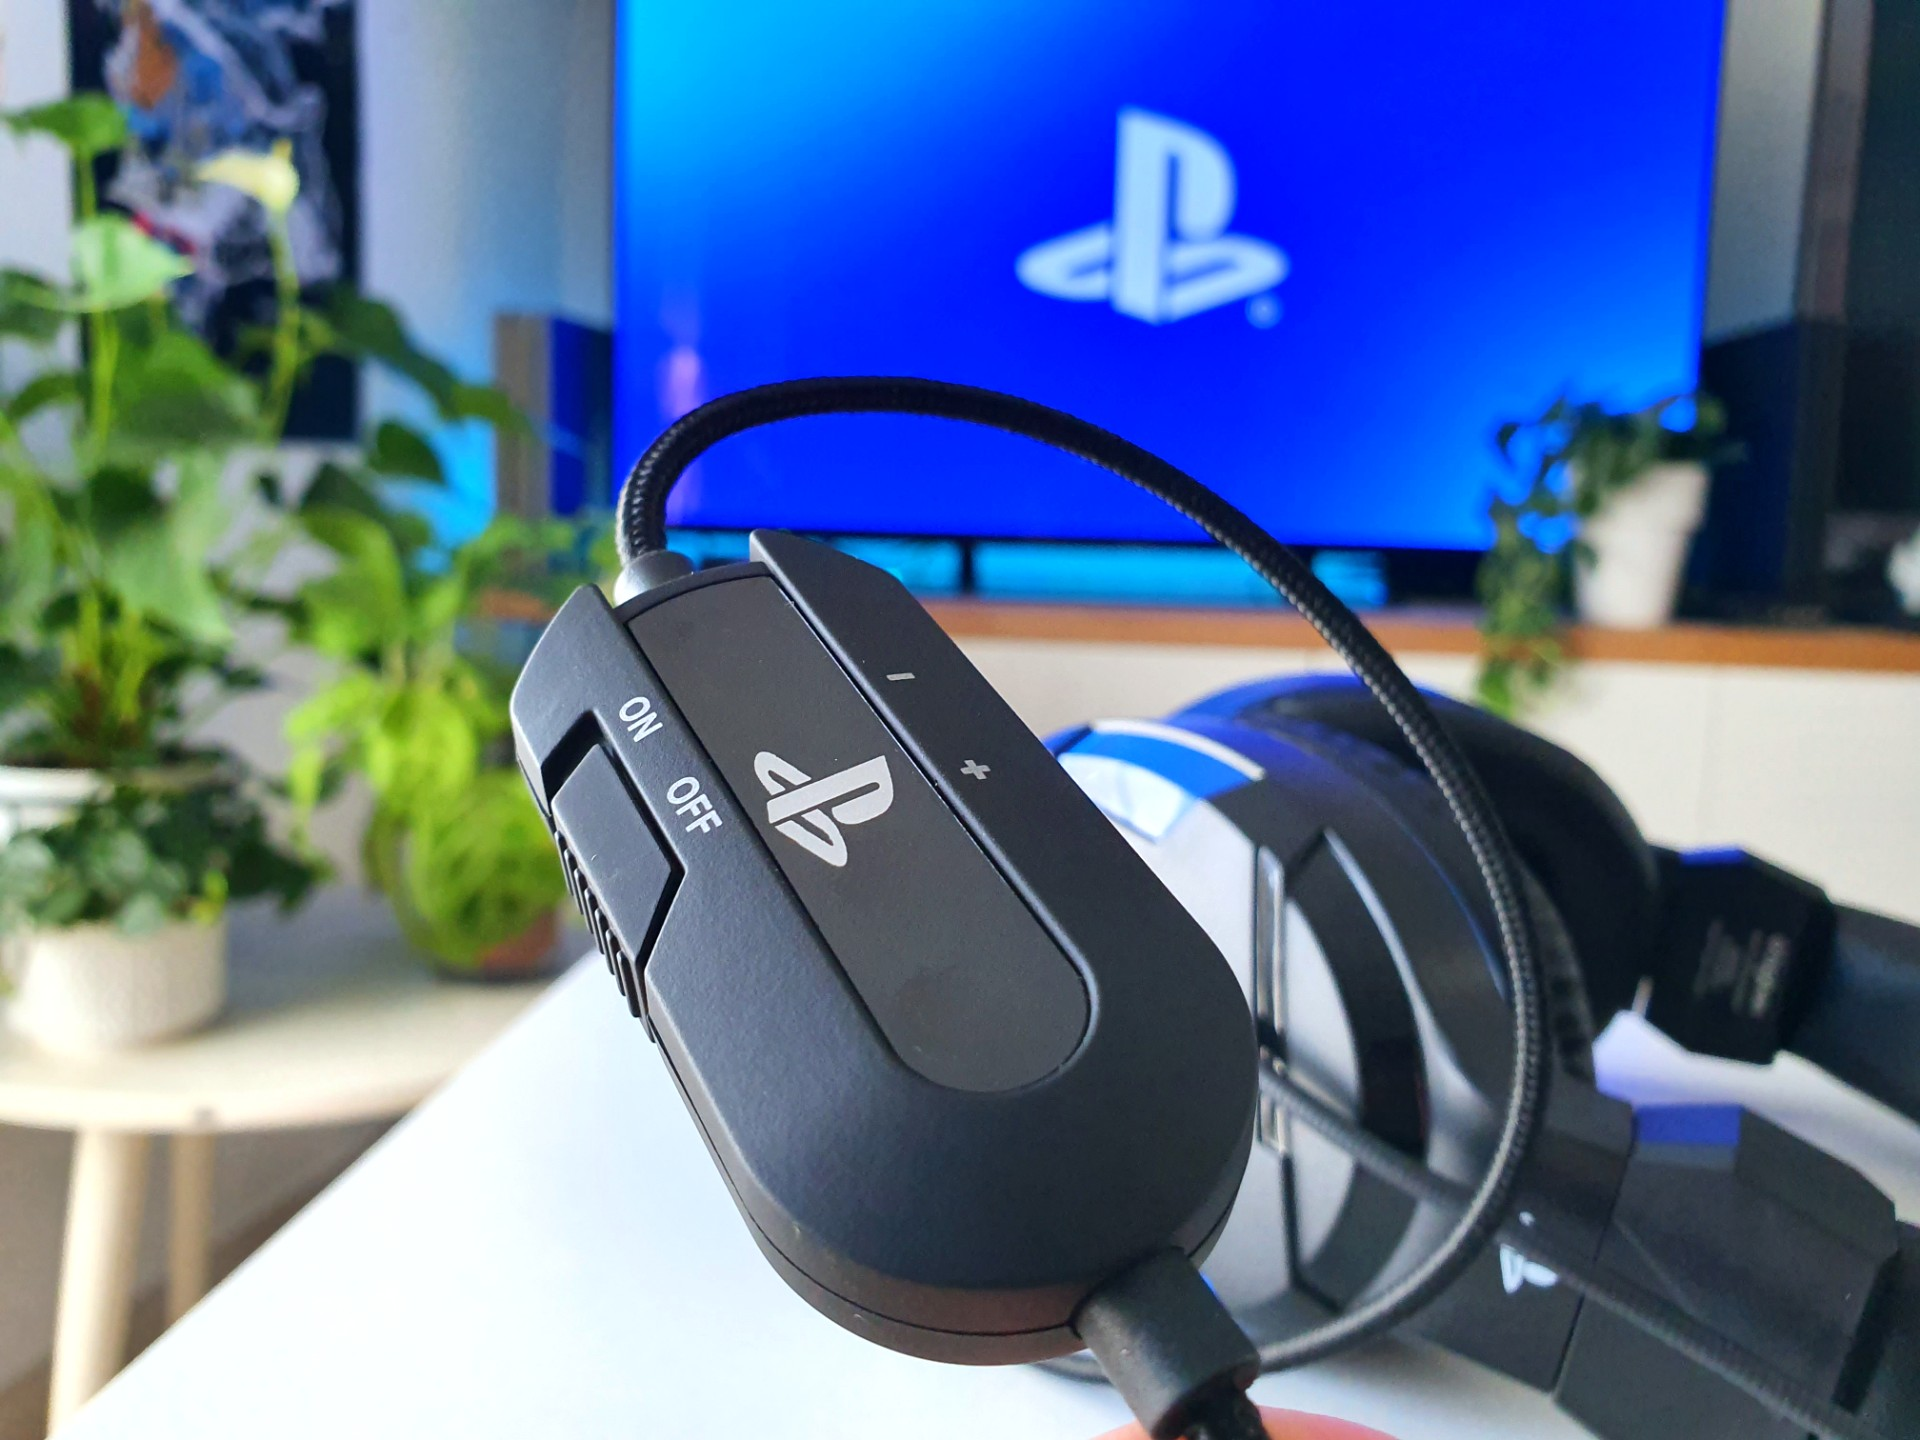 Avis - Casque Gaming officiel PS4 Bigben V3 blog jeux video matériel lageekroom